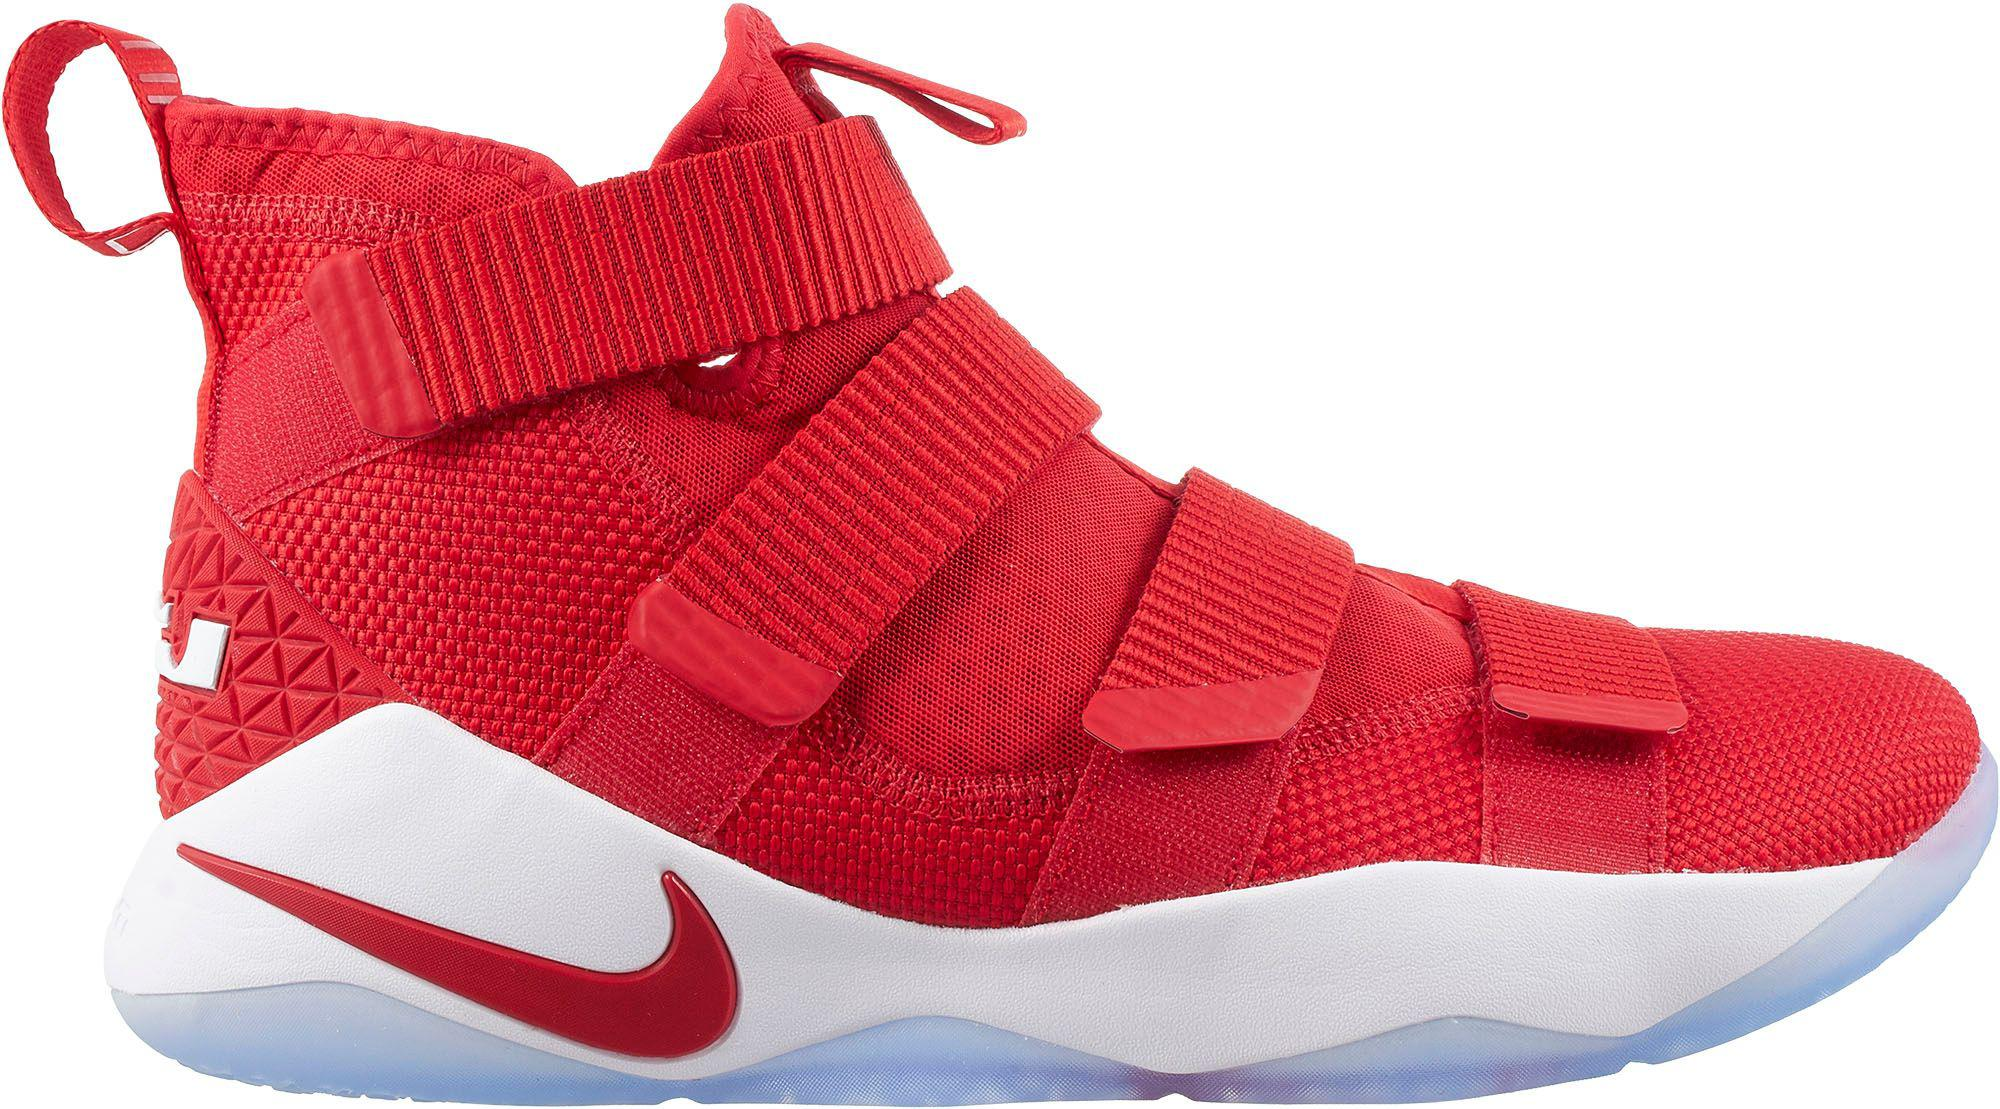 best service e537b 89acc Nike Red Zoom Lebron Soldier Xi Basketball Shoes for men